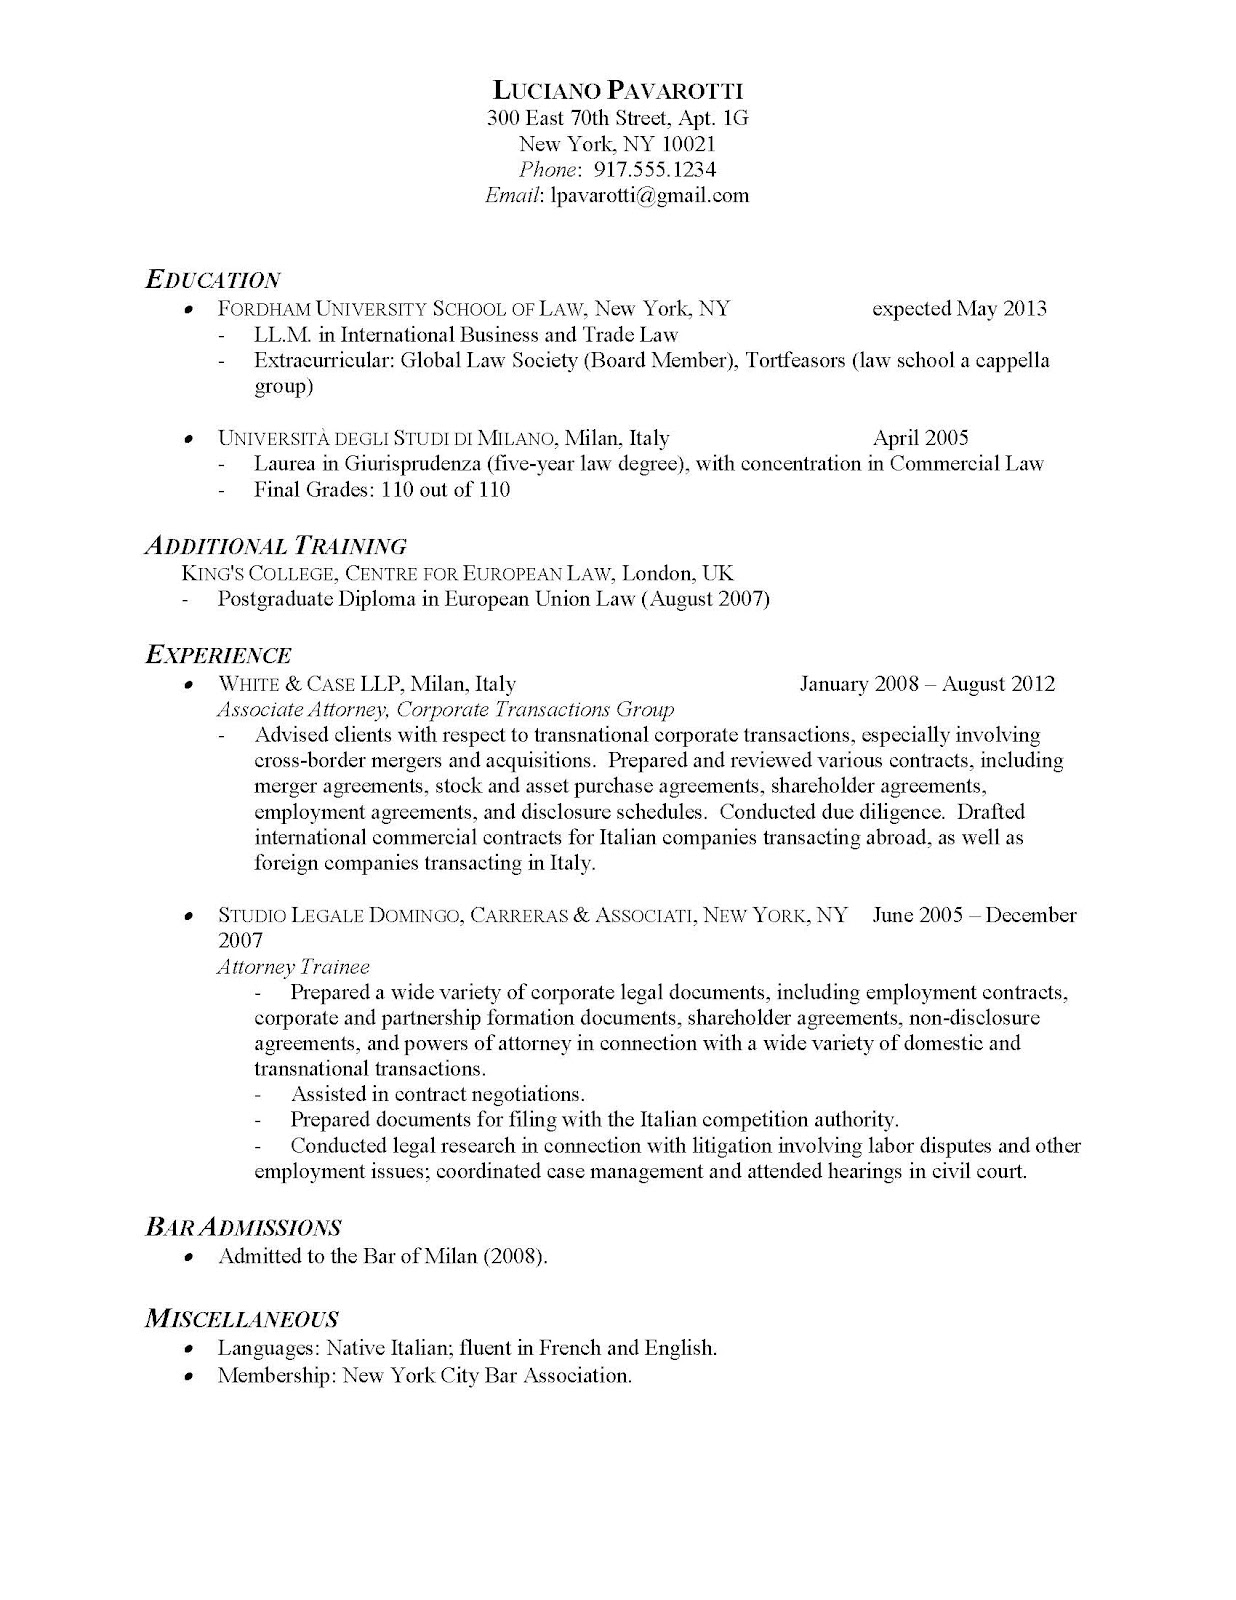 Opposenewapstandardsus  Unique Resume Reviewer Resume Reviewer Medioxco With Fair Resume Reviewer Hiringlibrariansresumedoc  Hiringlibrariansresumedoc   With Appealing Resume Temple Also Sample Dental Assistant Resume In Addition Creat A Resume And Best Words To Use On Resume As Well As  Page Resume Examples Additionally Cashier Job Duties For Resume From Medioxco With Opposenewapstandardsus  Fair Resume Reviewer Resume Reviewer Medioxco With Appealing Resume Reviewer Hiringlibrariansresumedoc  Hiringlibrariansresumedoc   And Unique Resume Temple Also Sample Dental Assistant Resume In Addition Creat A Resume From Medioxco